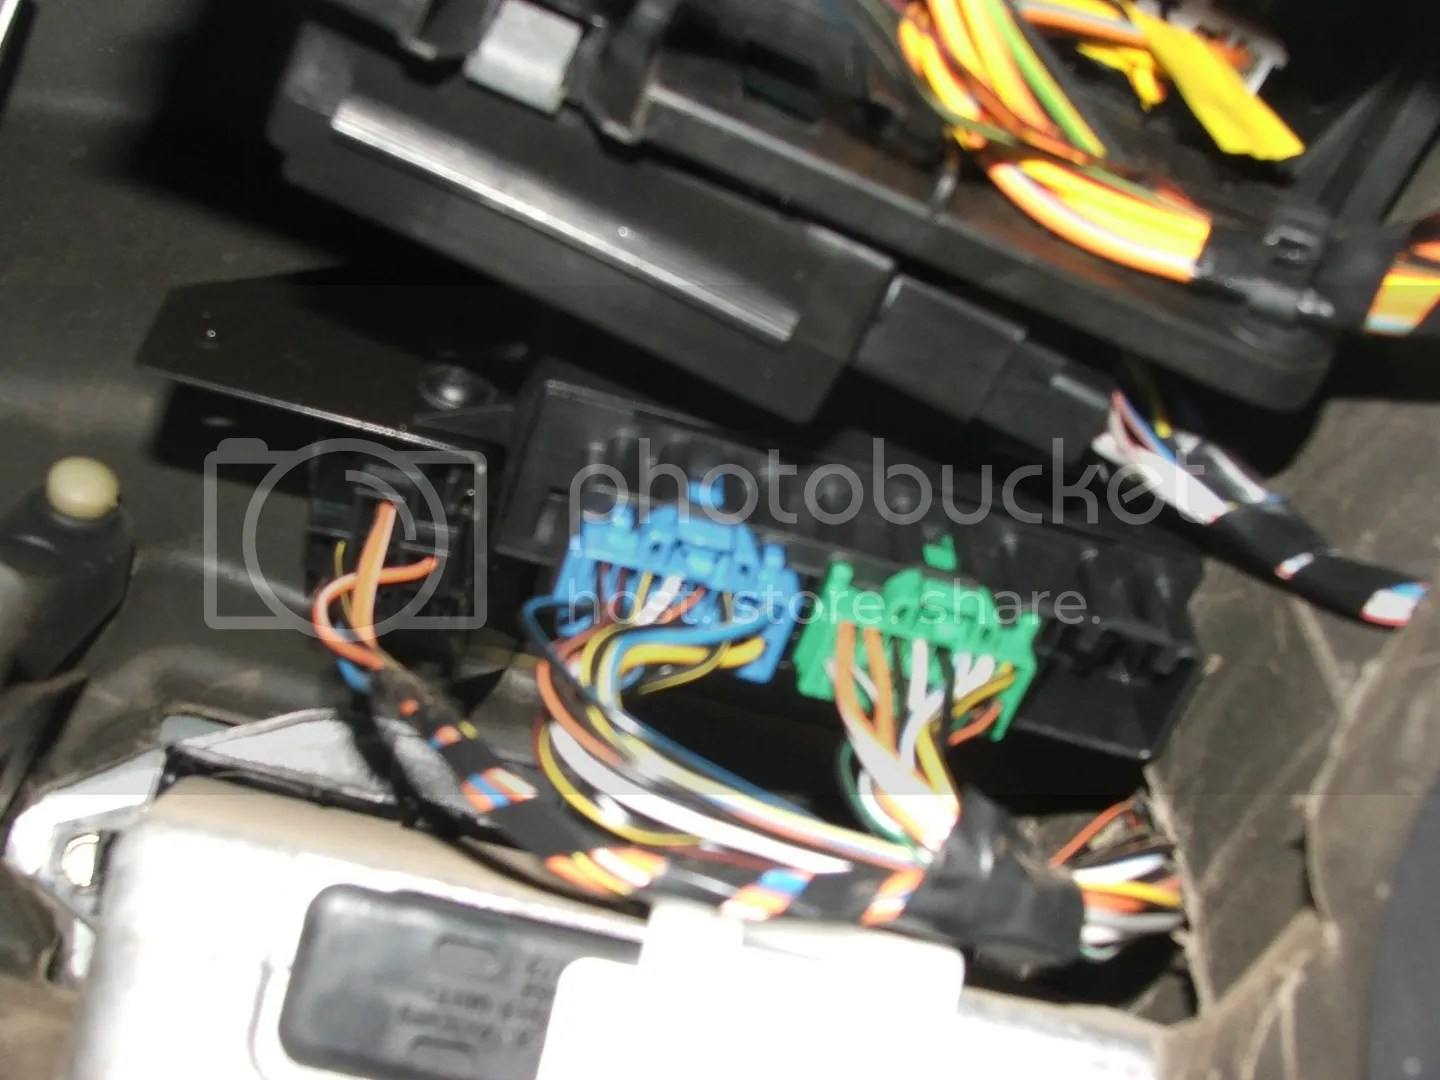 2006 Ford Fiesta Mk7 Main Fuse Box Diagram